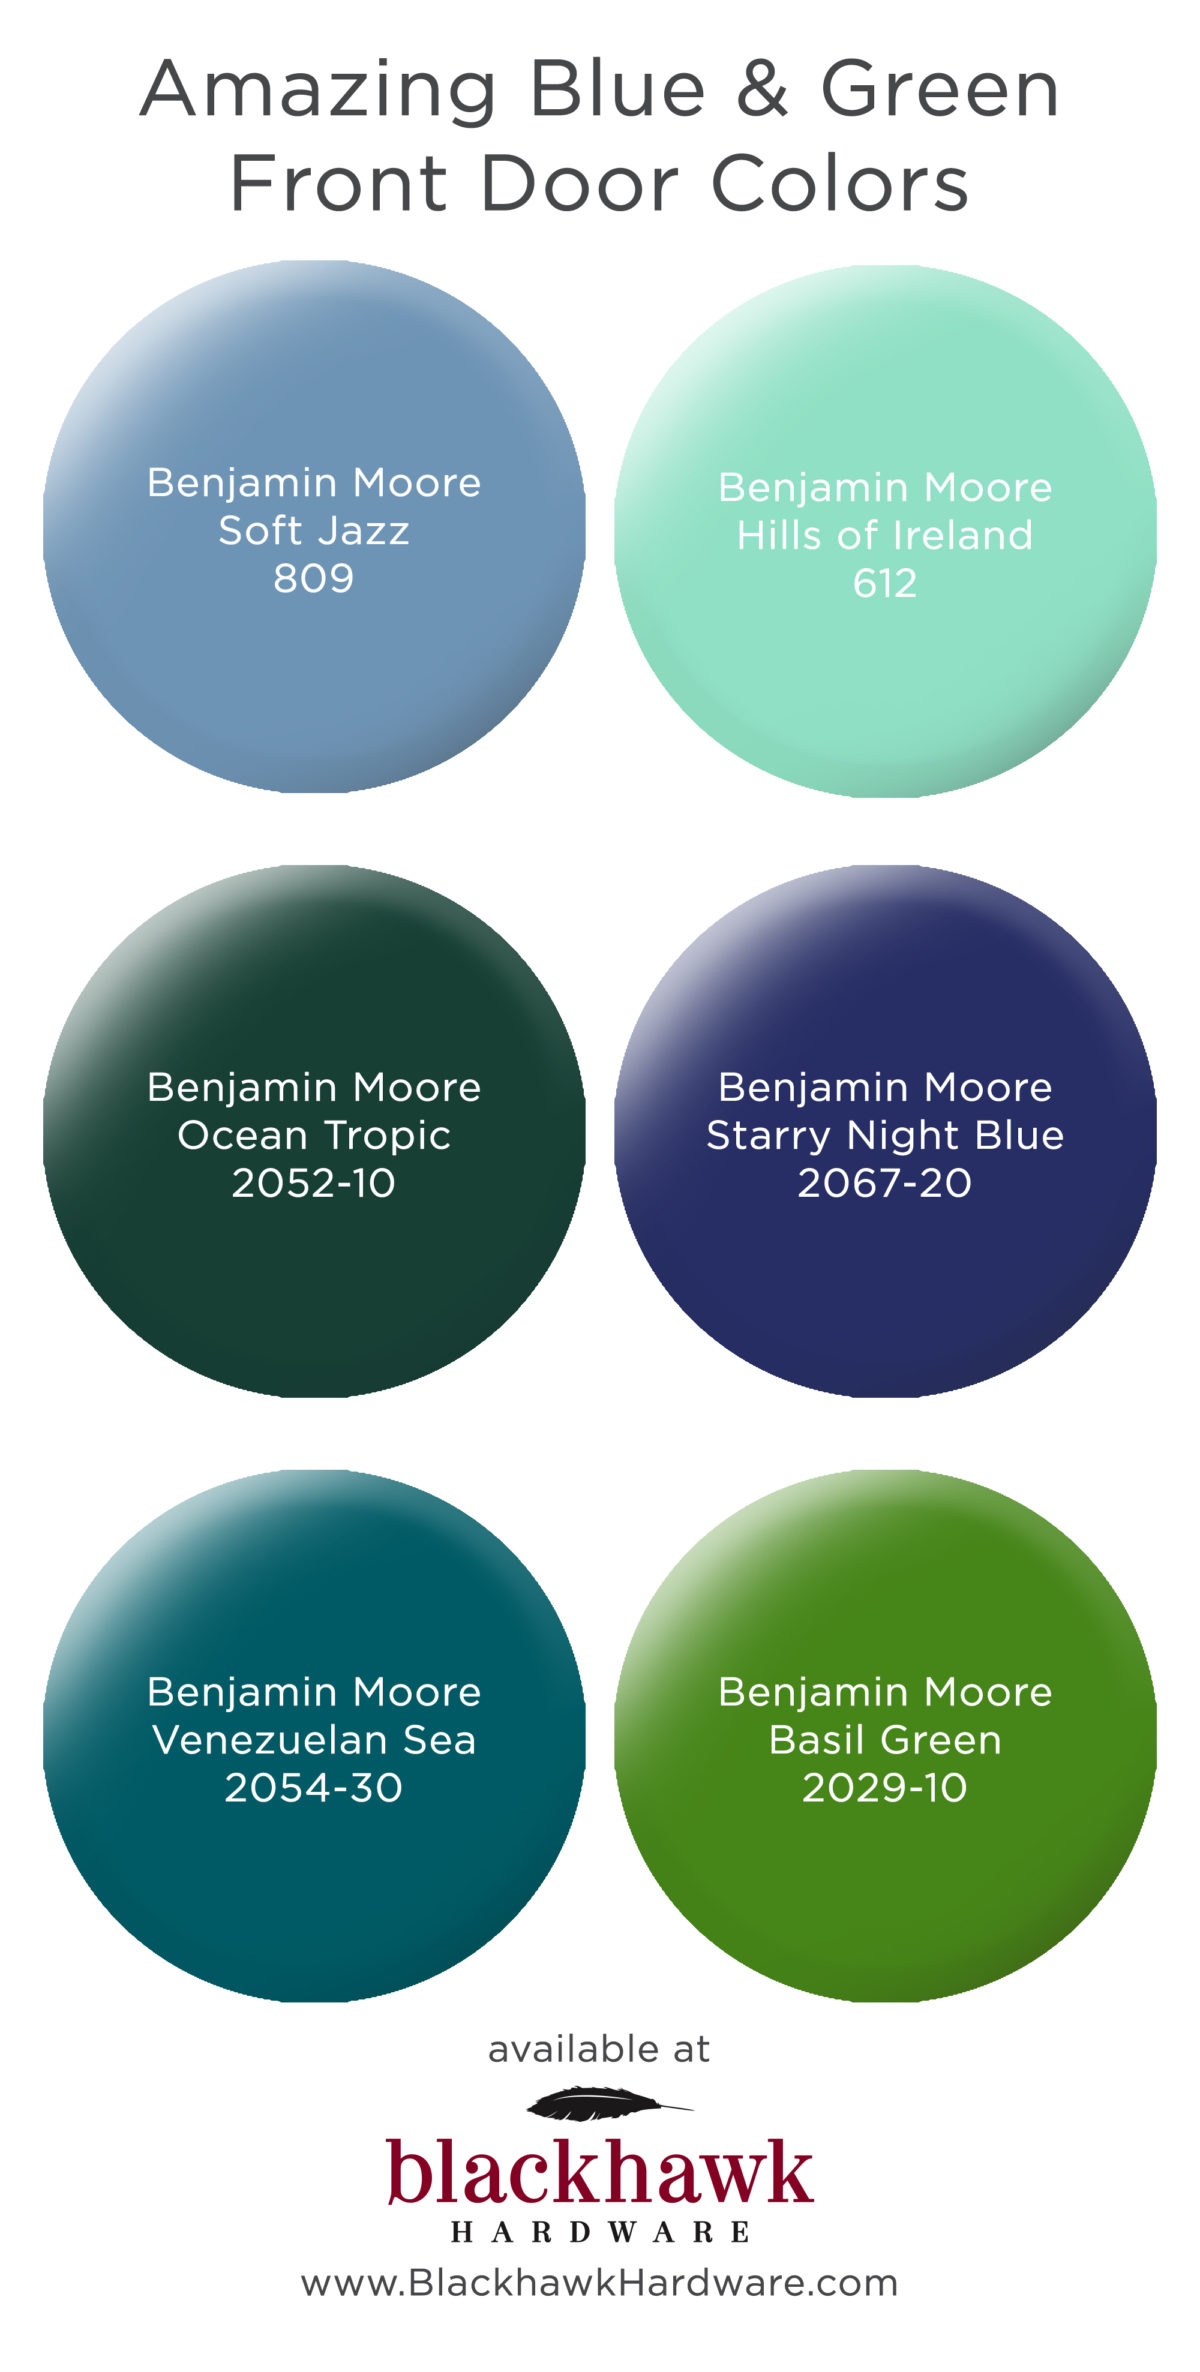 Pa Directory 6 Great Blue And Green Door Paint Colors 1200x2372 Jpg